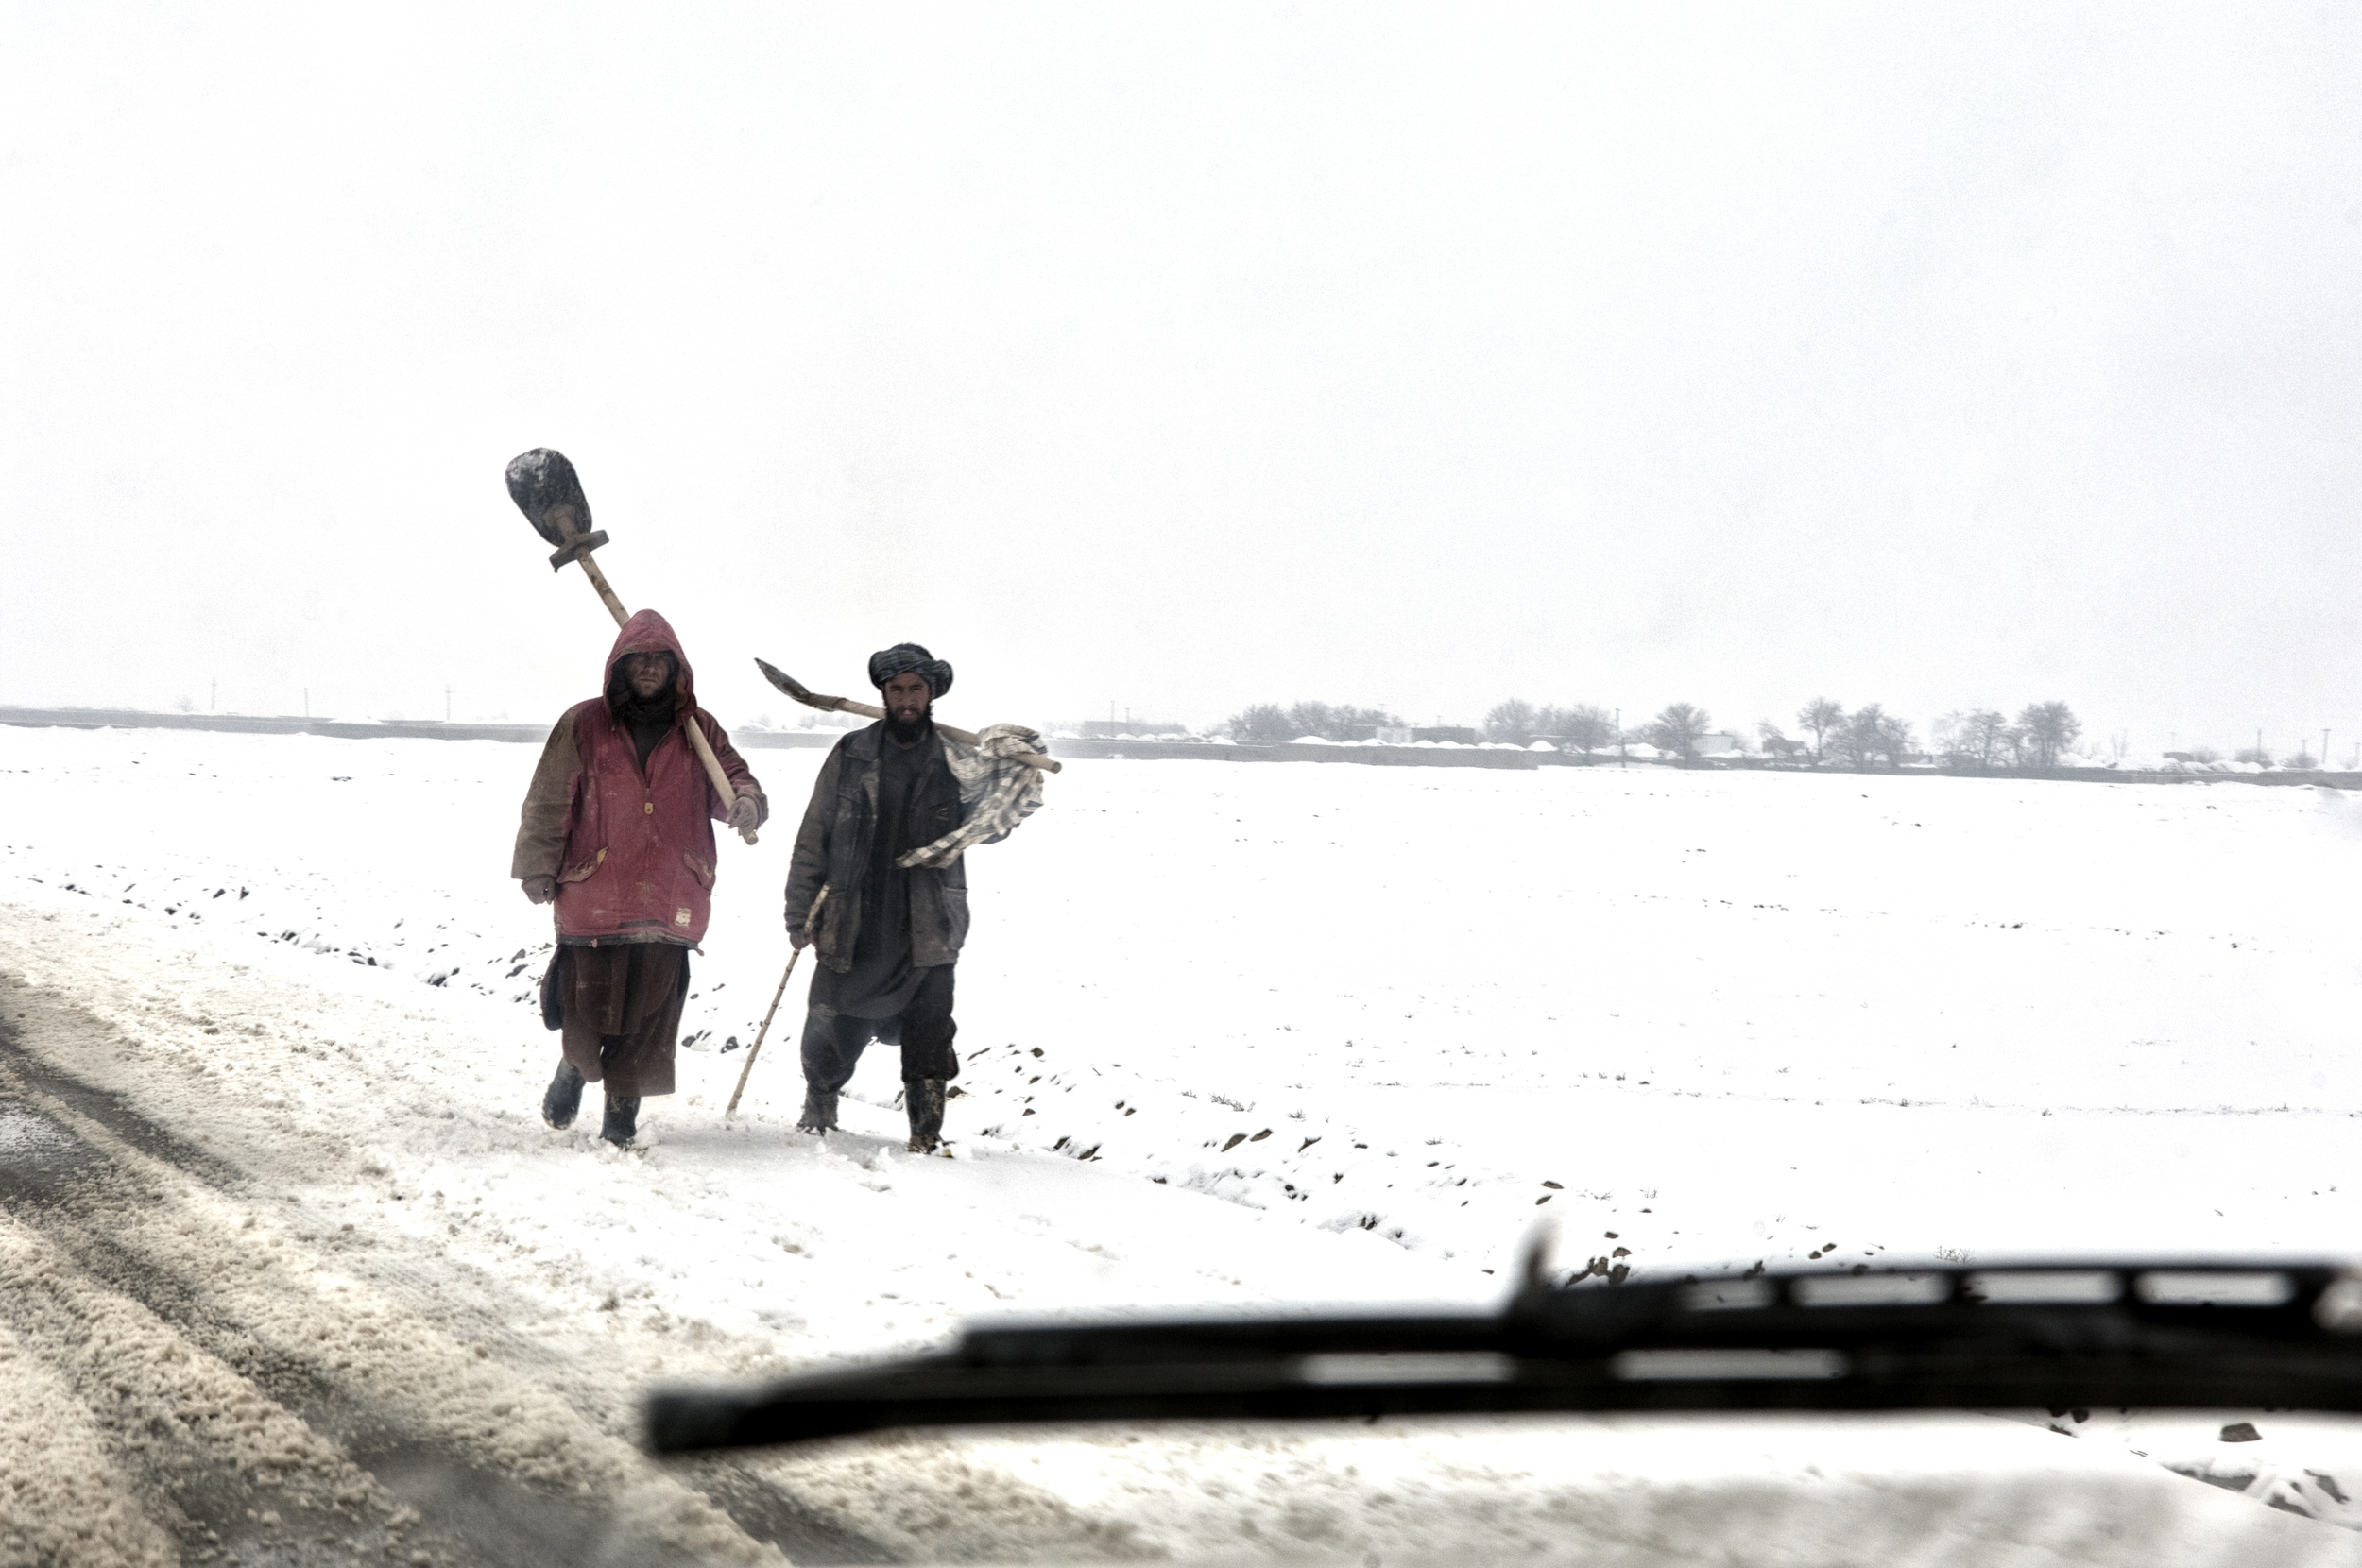 Locals carrying shovels to clear parts of the A76 in Sheberghan,  Jowzjan Province, Afghanistan, February 14, 2008. (Photo/Mark Pearson)